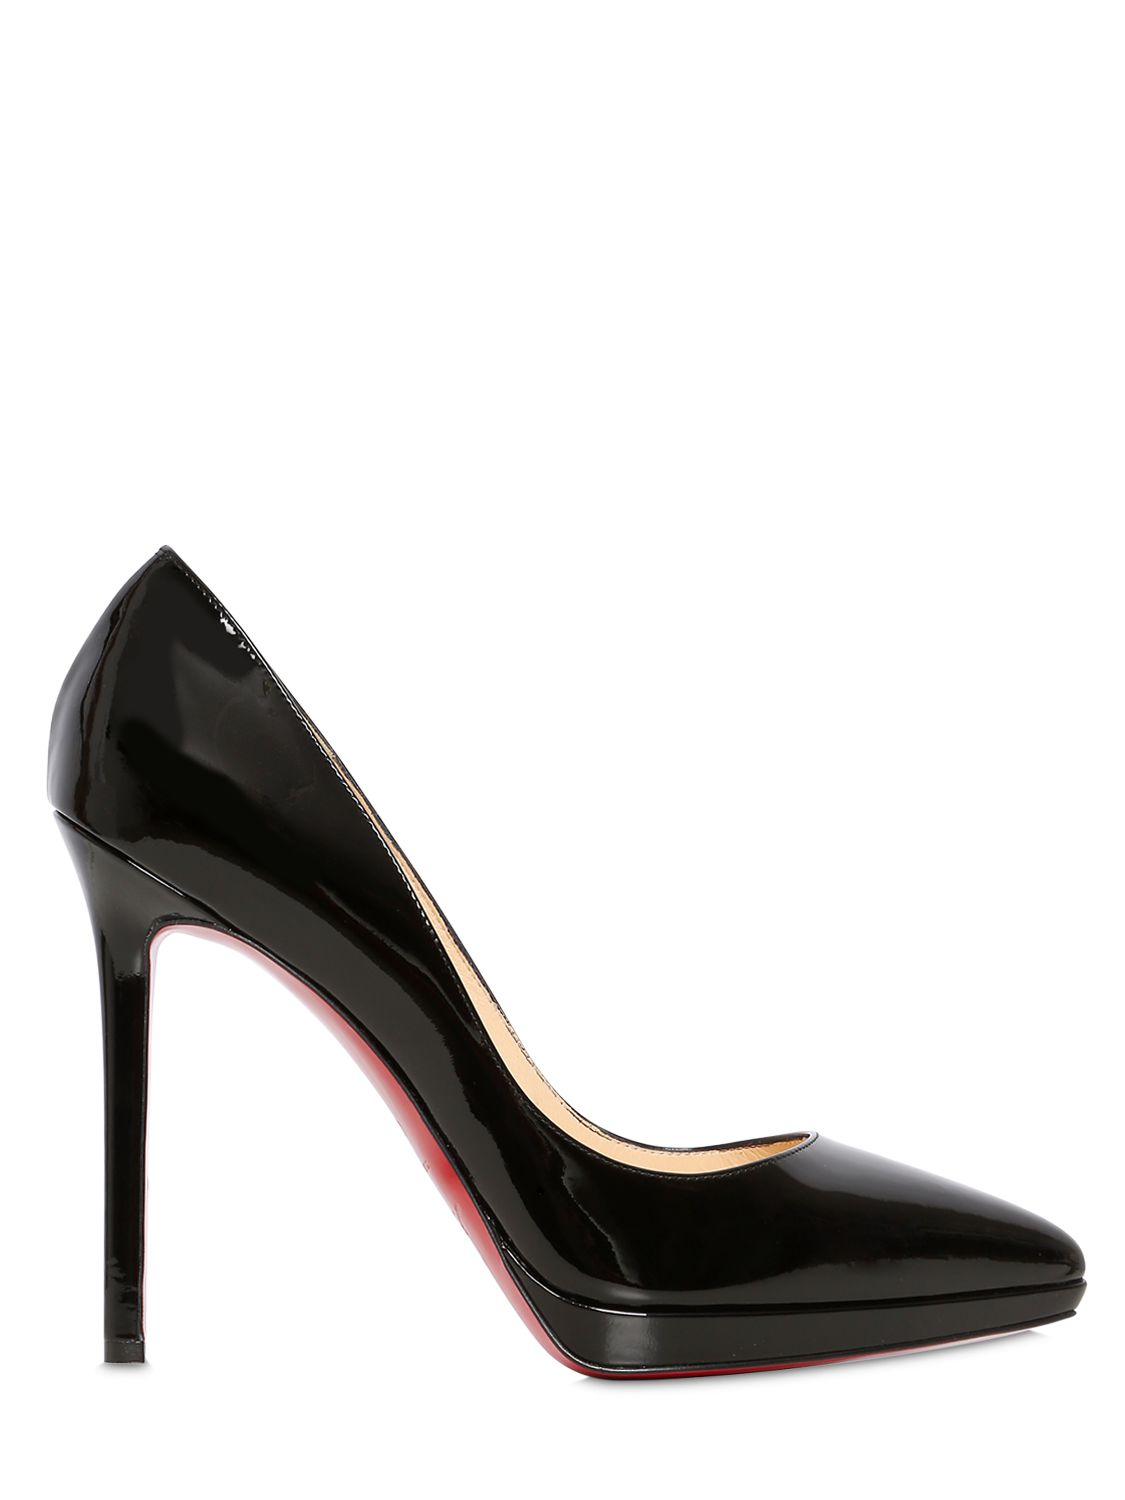 save off 0dd9b b8cb4 christian louboutin pigalle plato patent red sole pump ...